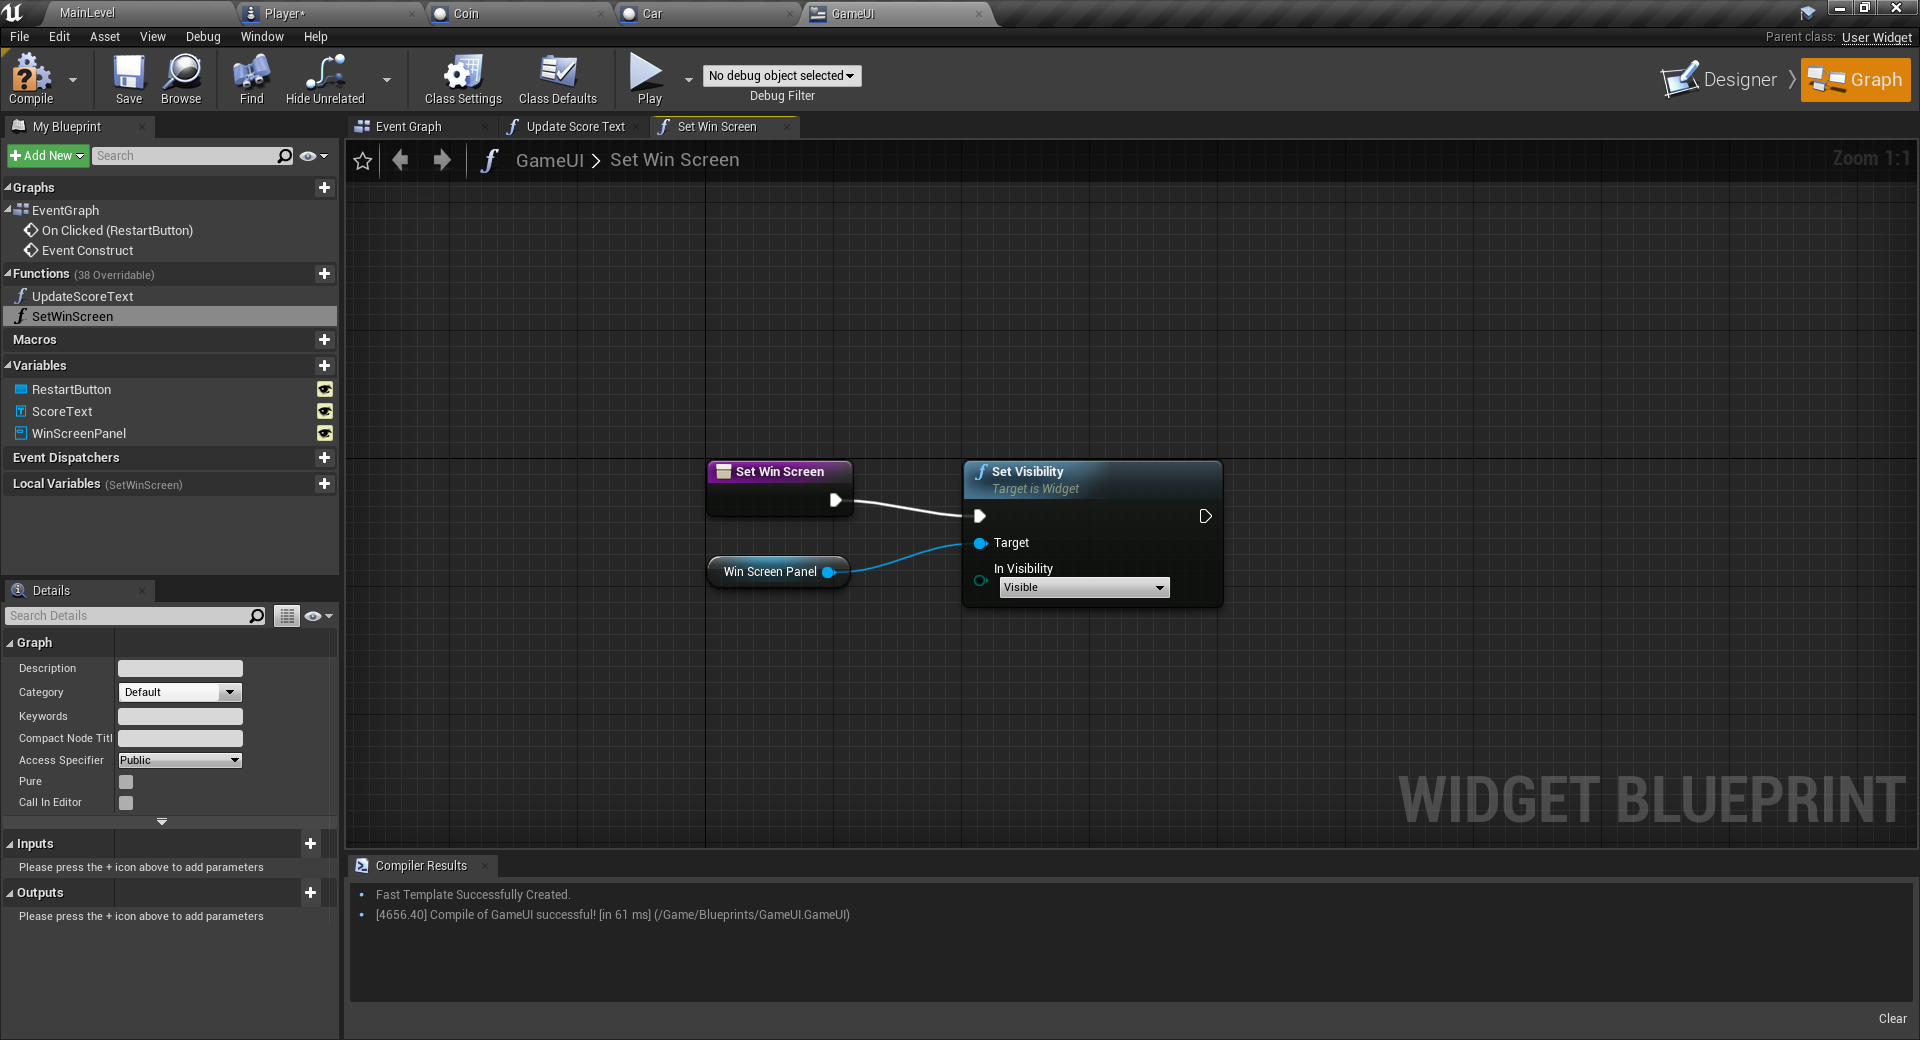 Logic to notify player of winning in Unreal Engine